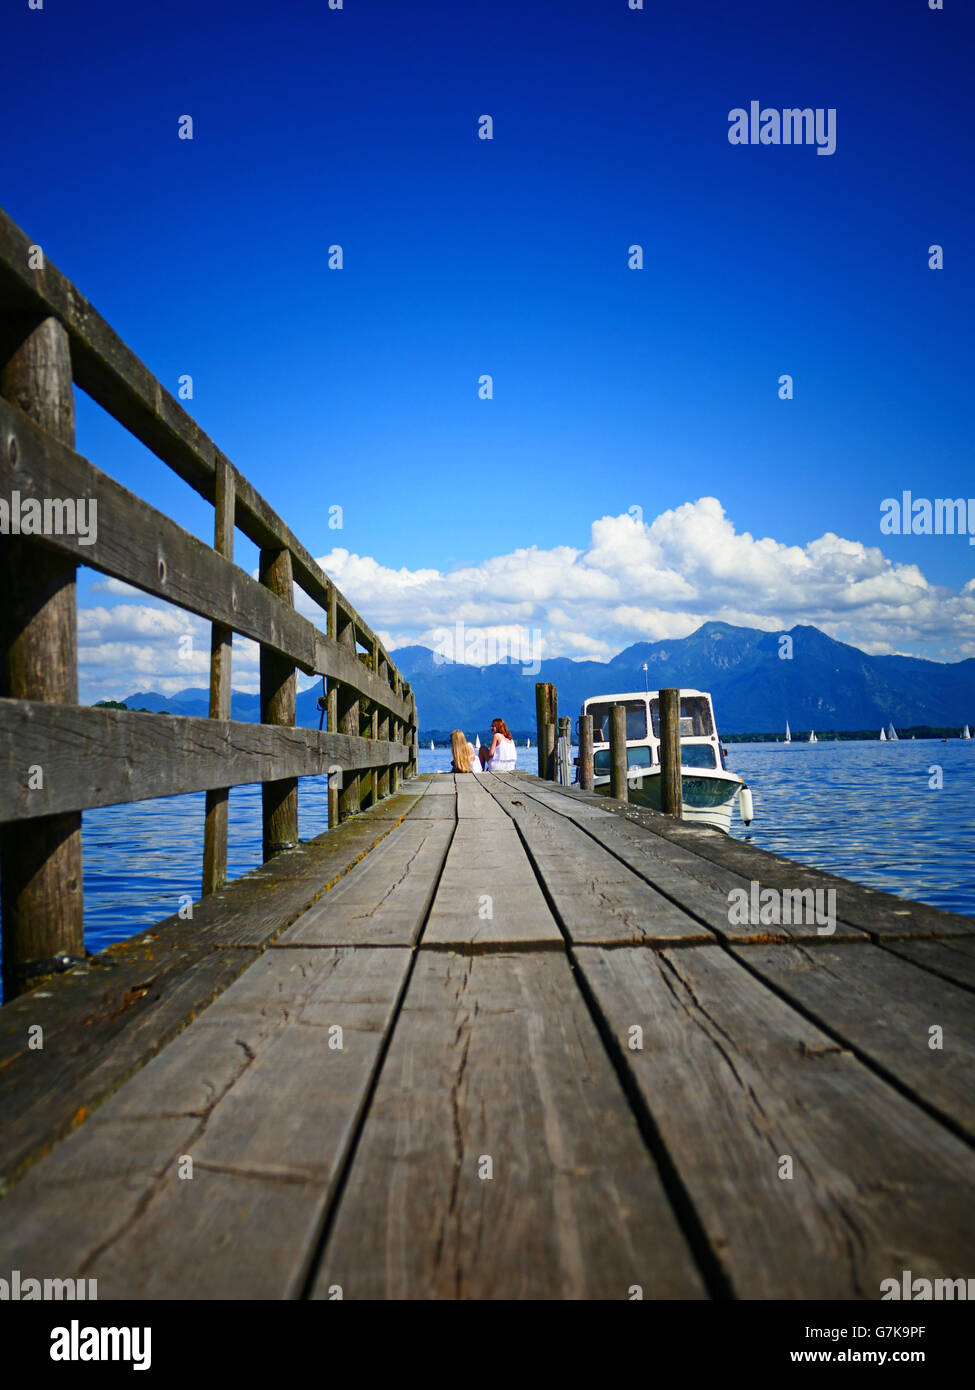 Europe Germany Chiemgau Chiemsee lake Prien wooden bridge boat mooring Stock Photo